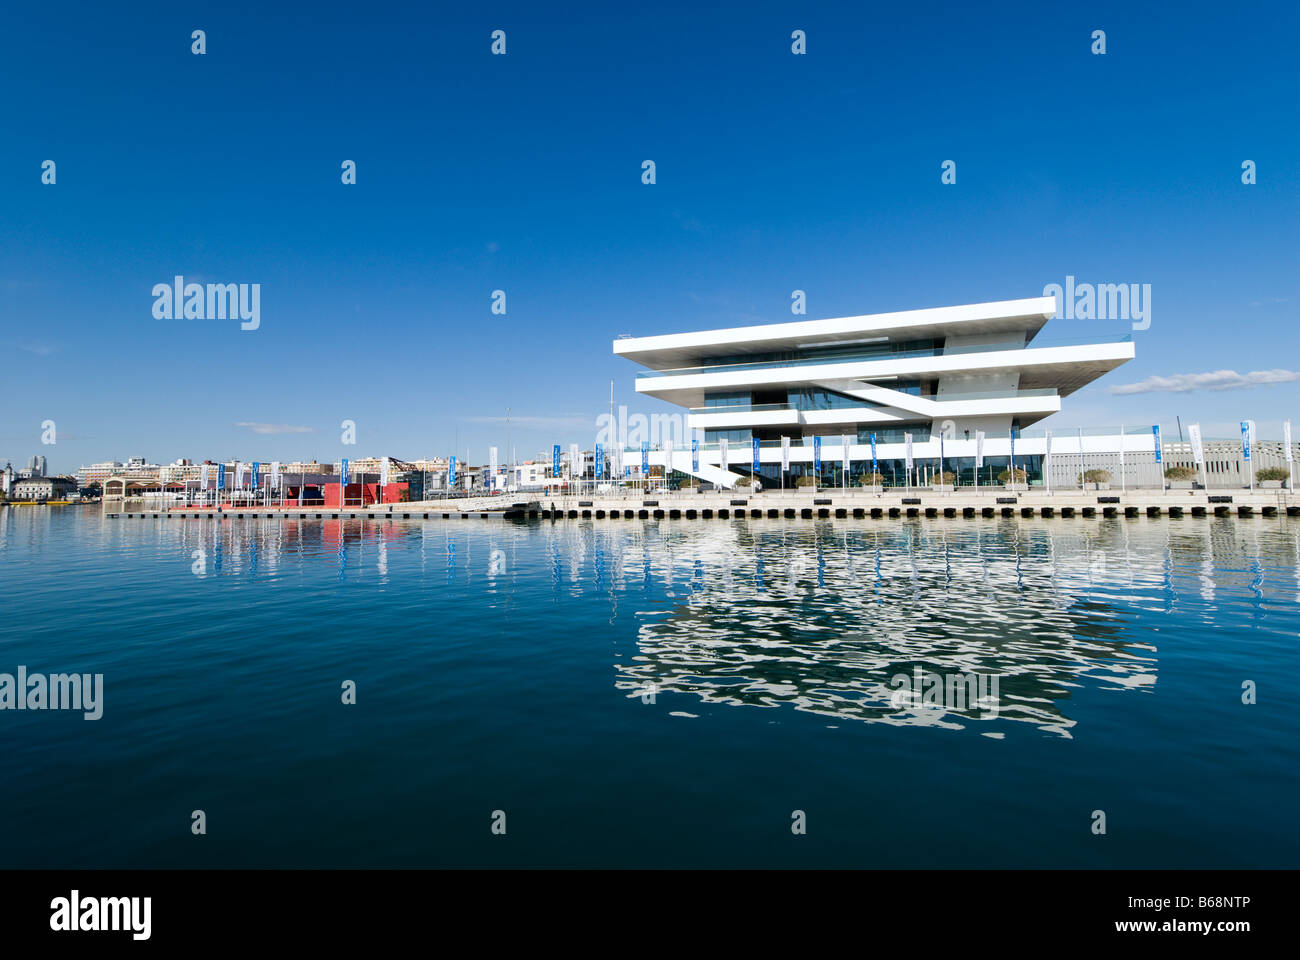 America s Cup Pavilion Veles e Vents or Sails Winds in the port of Valencia designed by David Chipperfield architects - Stock Image